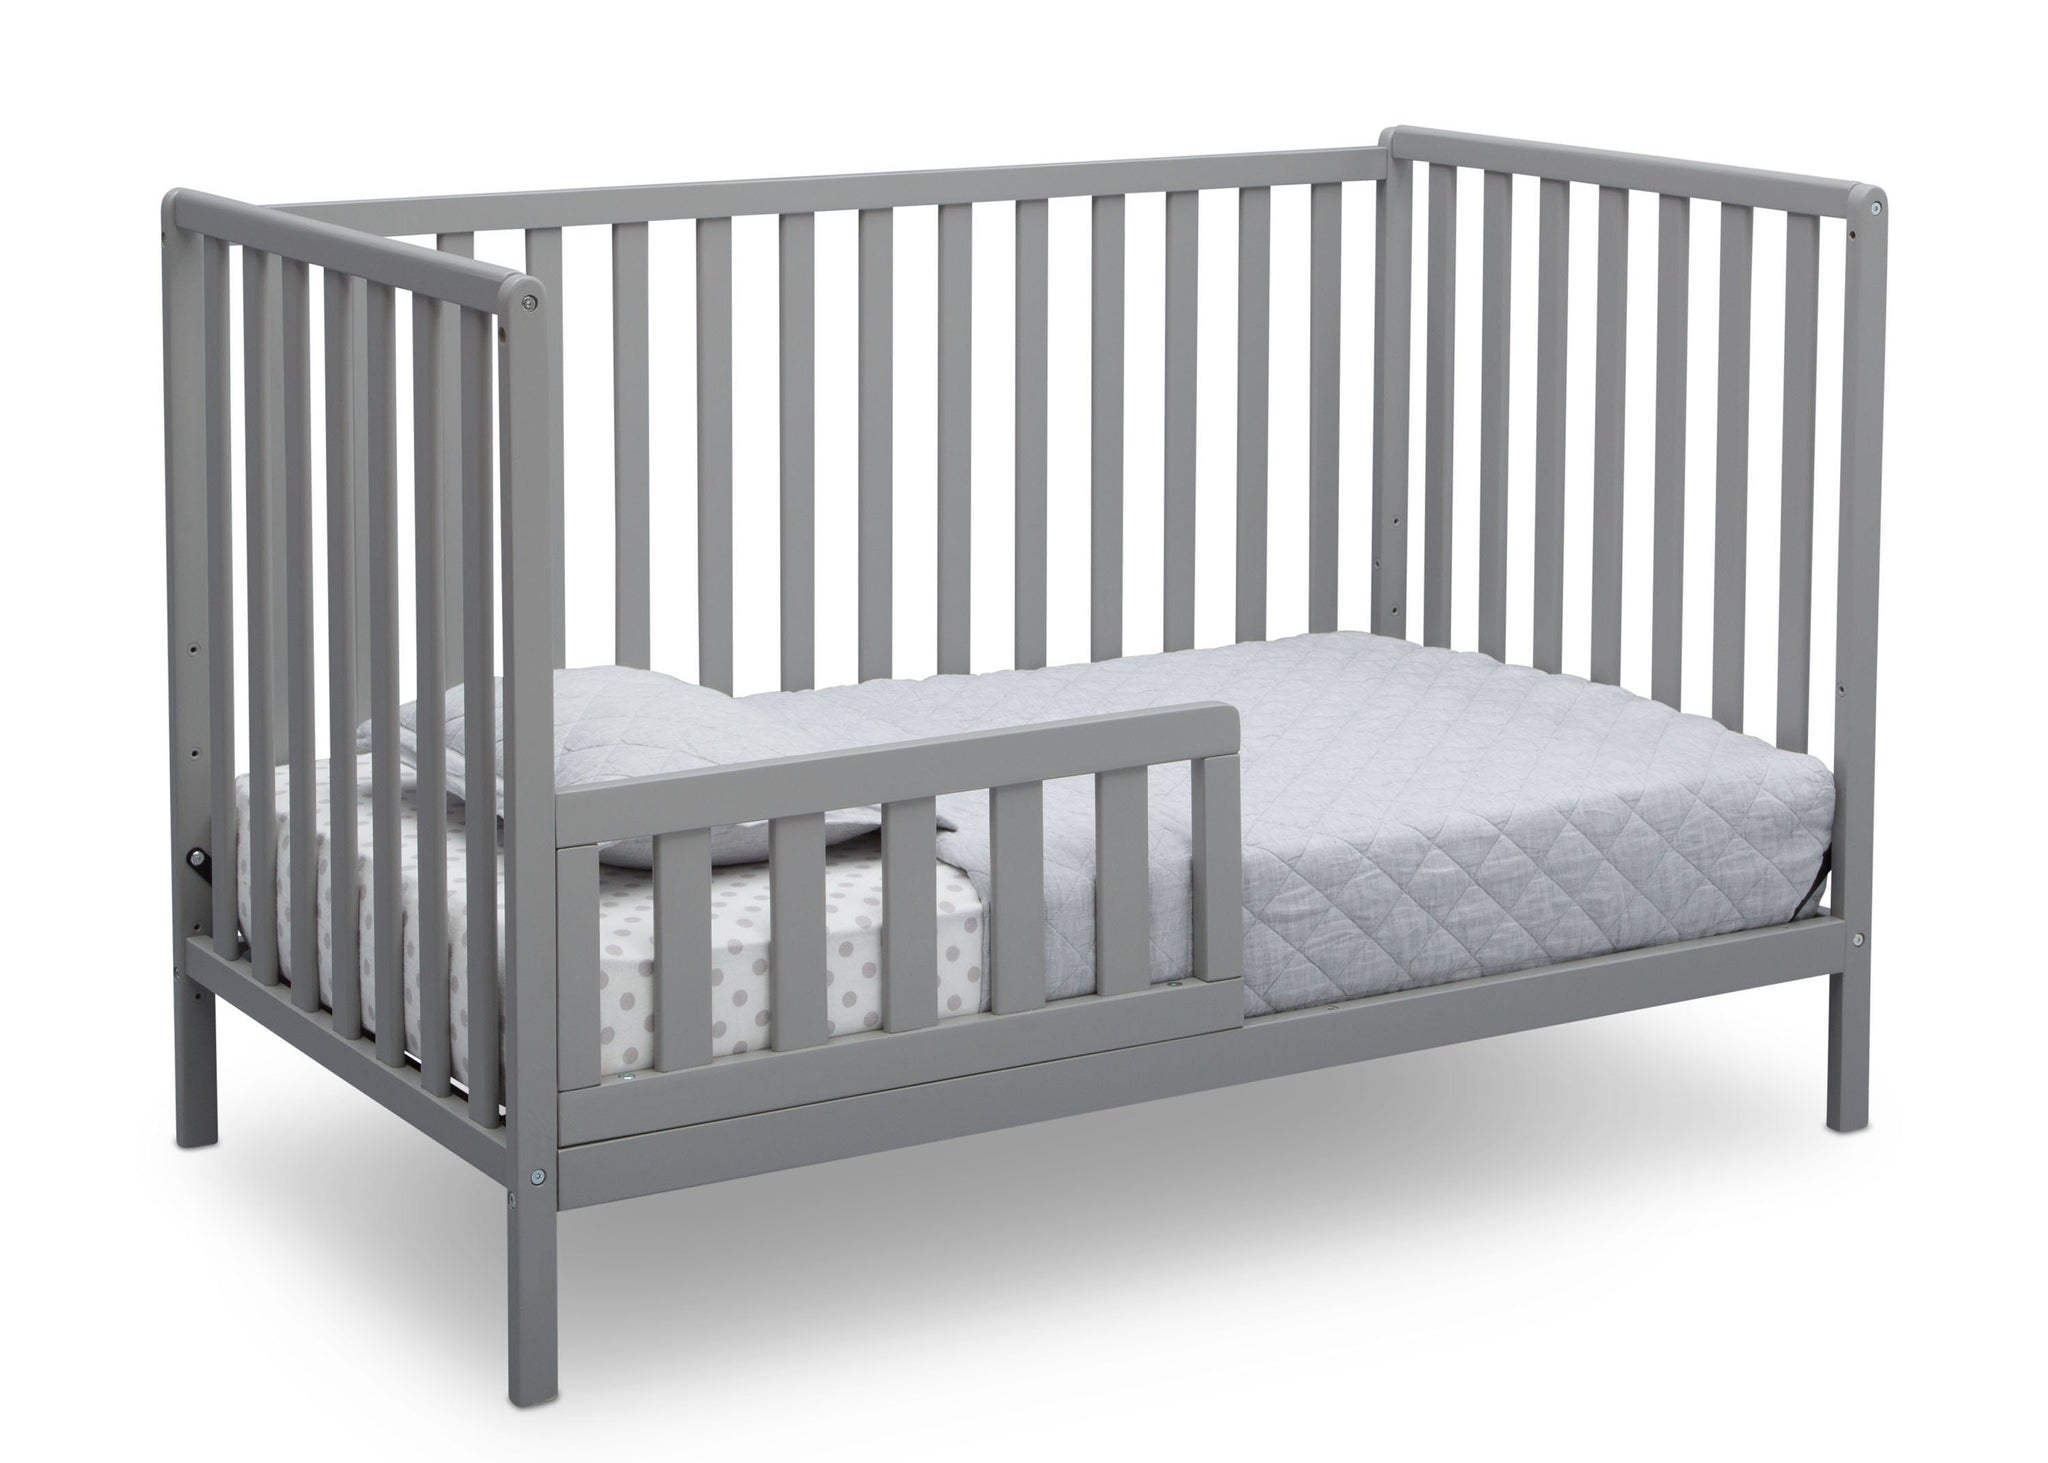 Delta Children Grey (026) Heartland 4-in-1 Convertible Crib, Toddler Bed View a4a